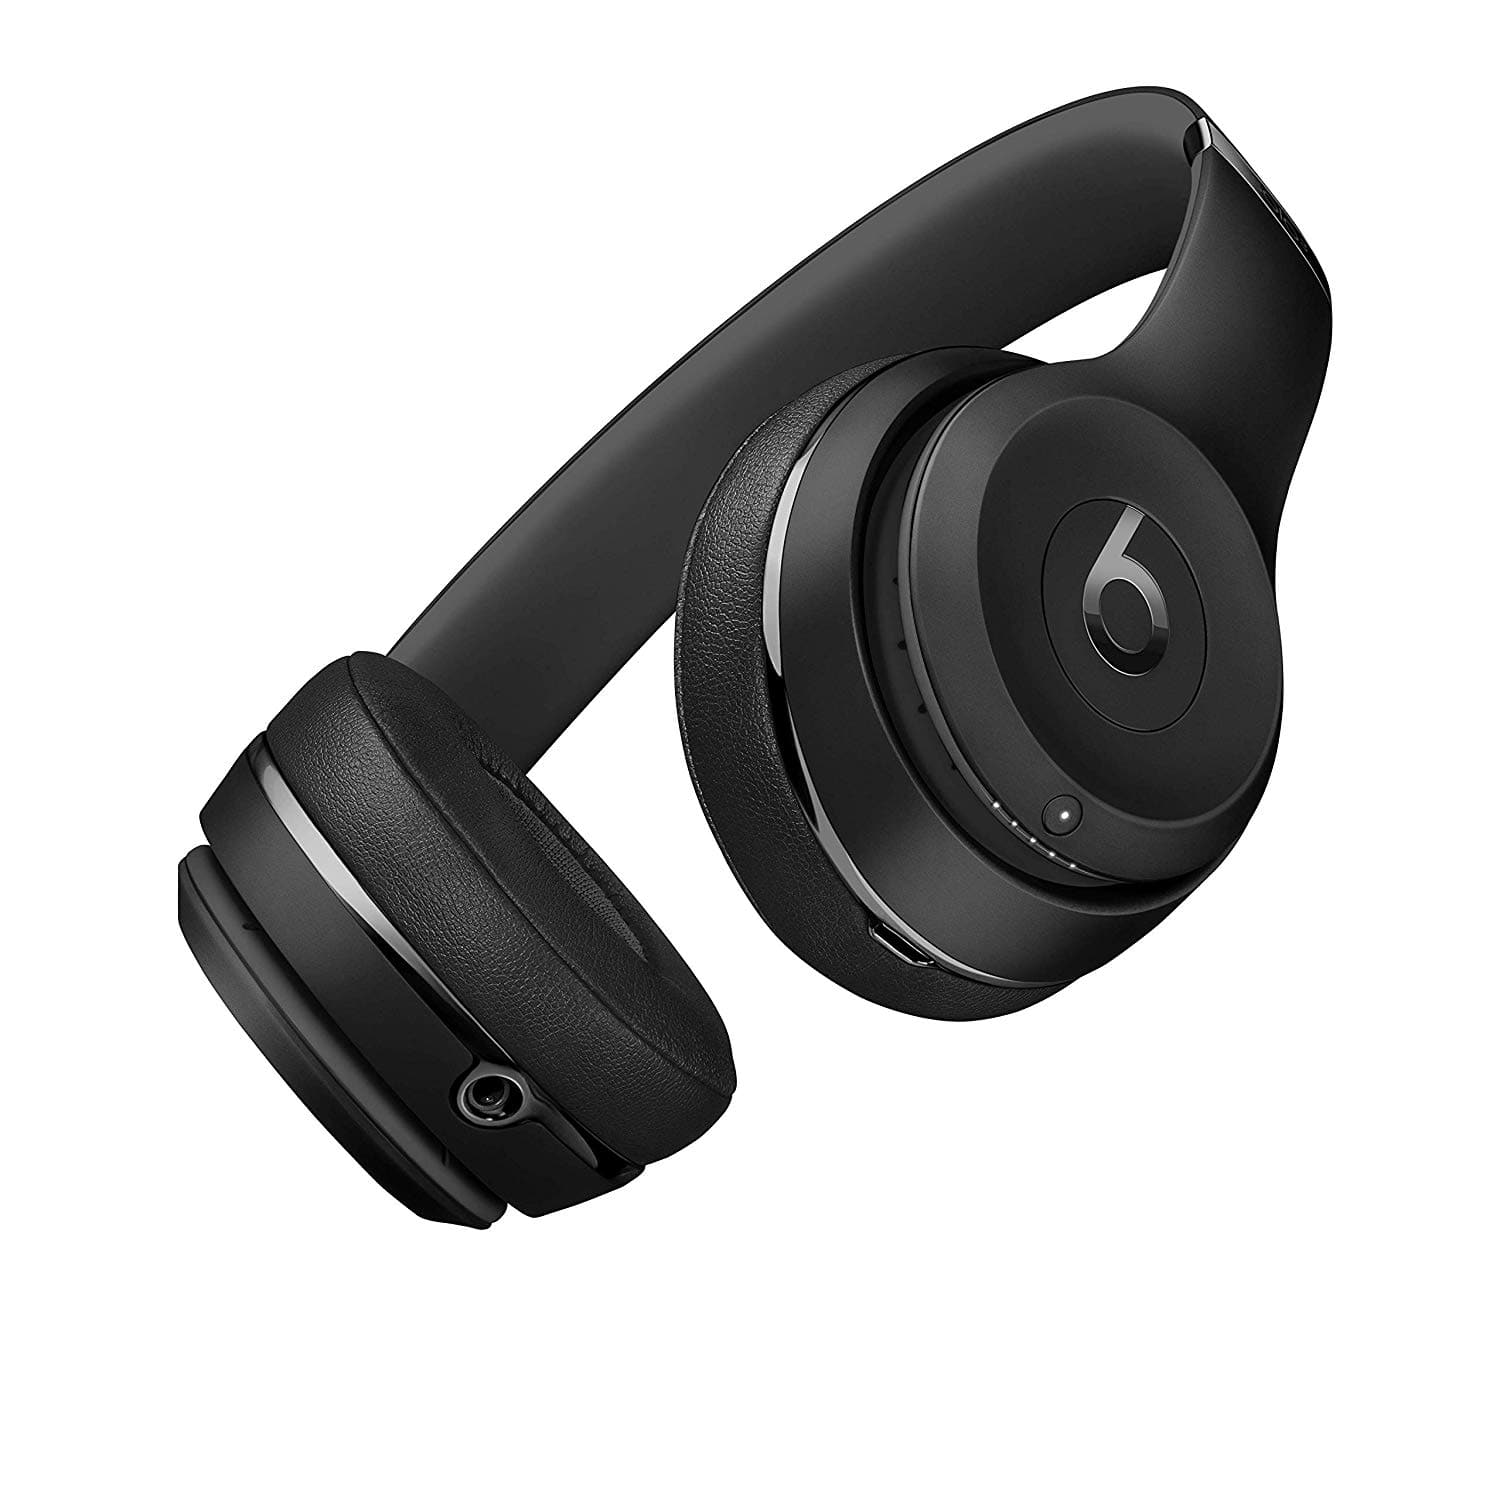 22e06a07cc2 Beats by Dr. Dre Beats Solo3 Wireless On-Ear Headphones (Black / Icon)  $139.99 - Slickdeals.net